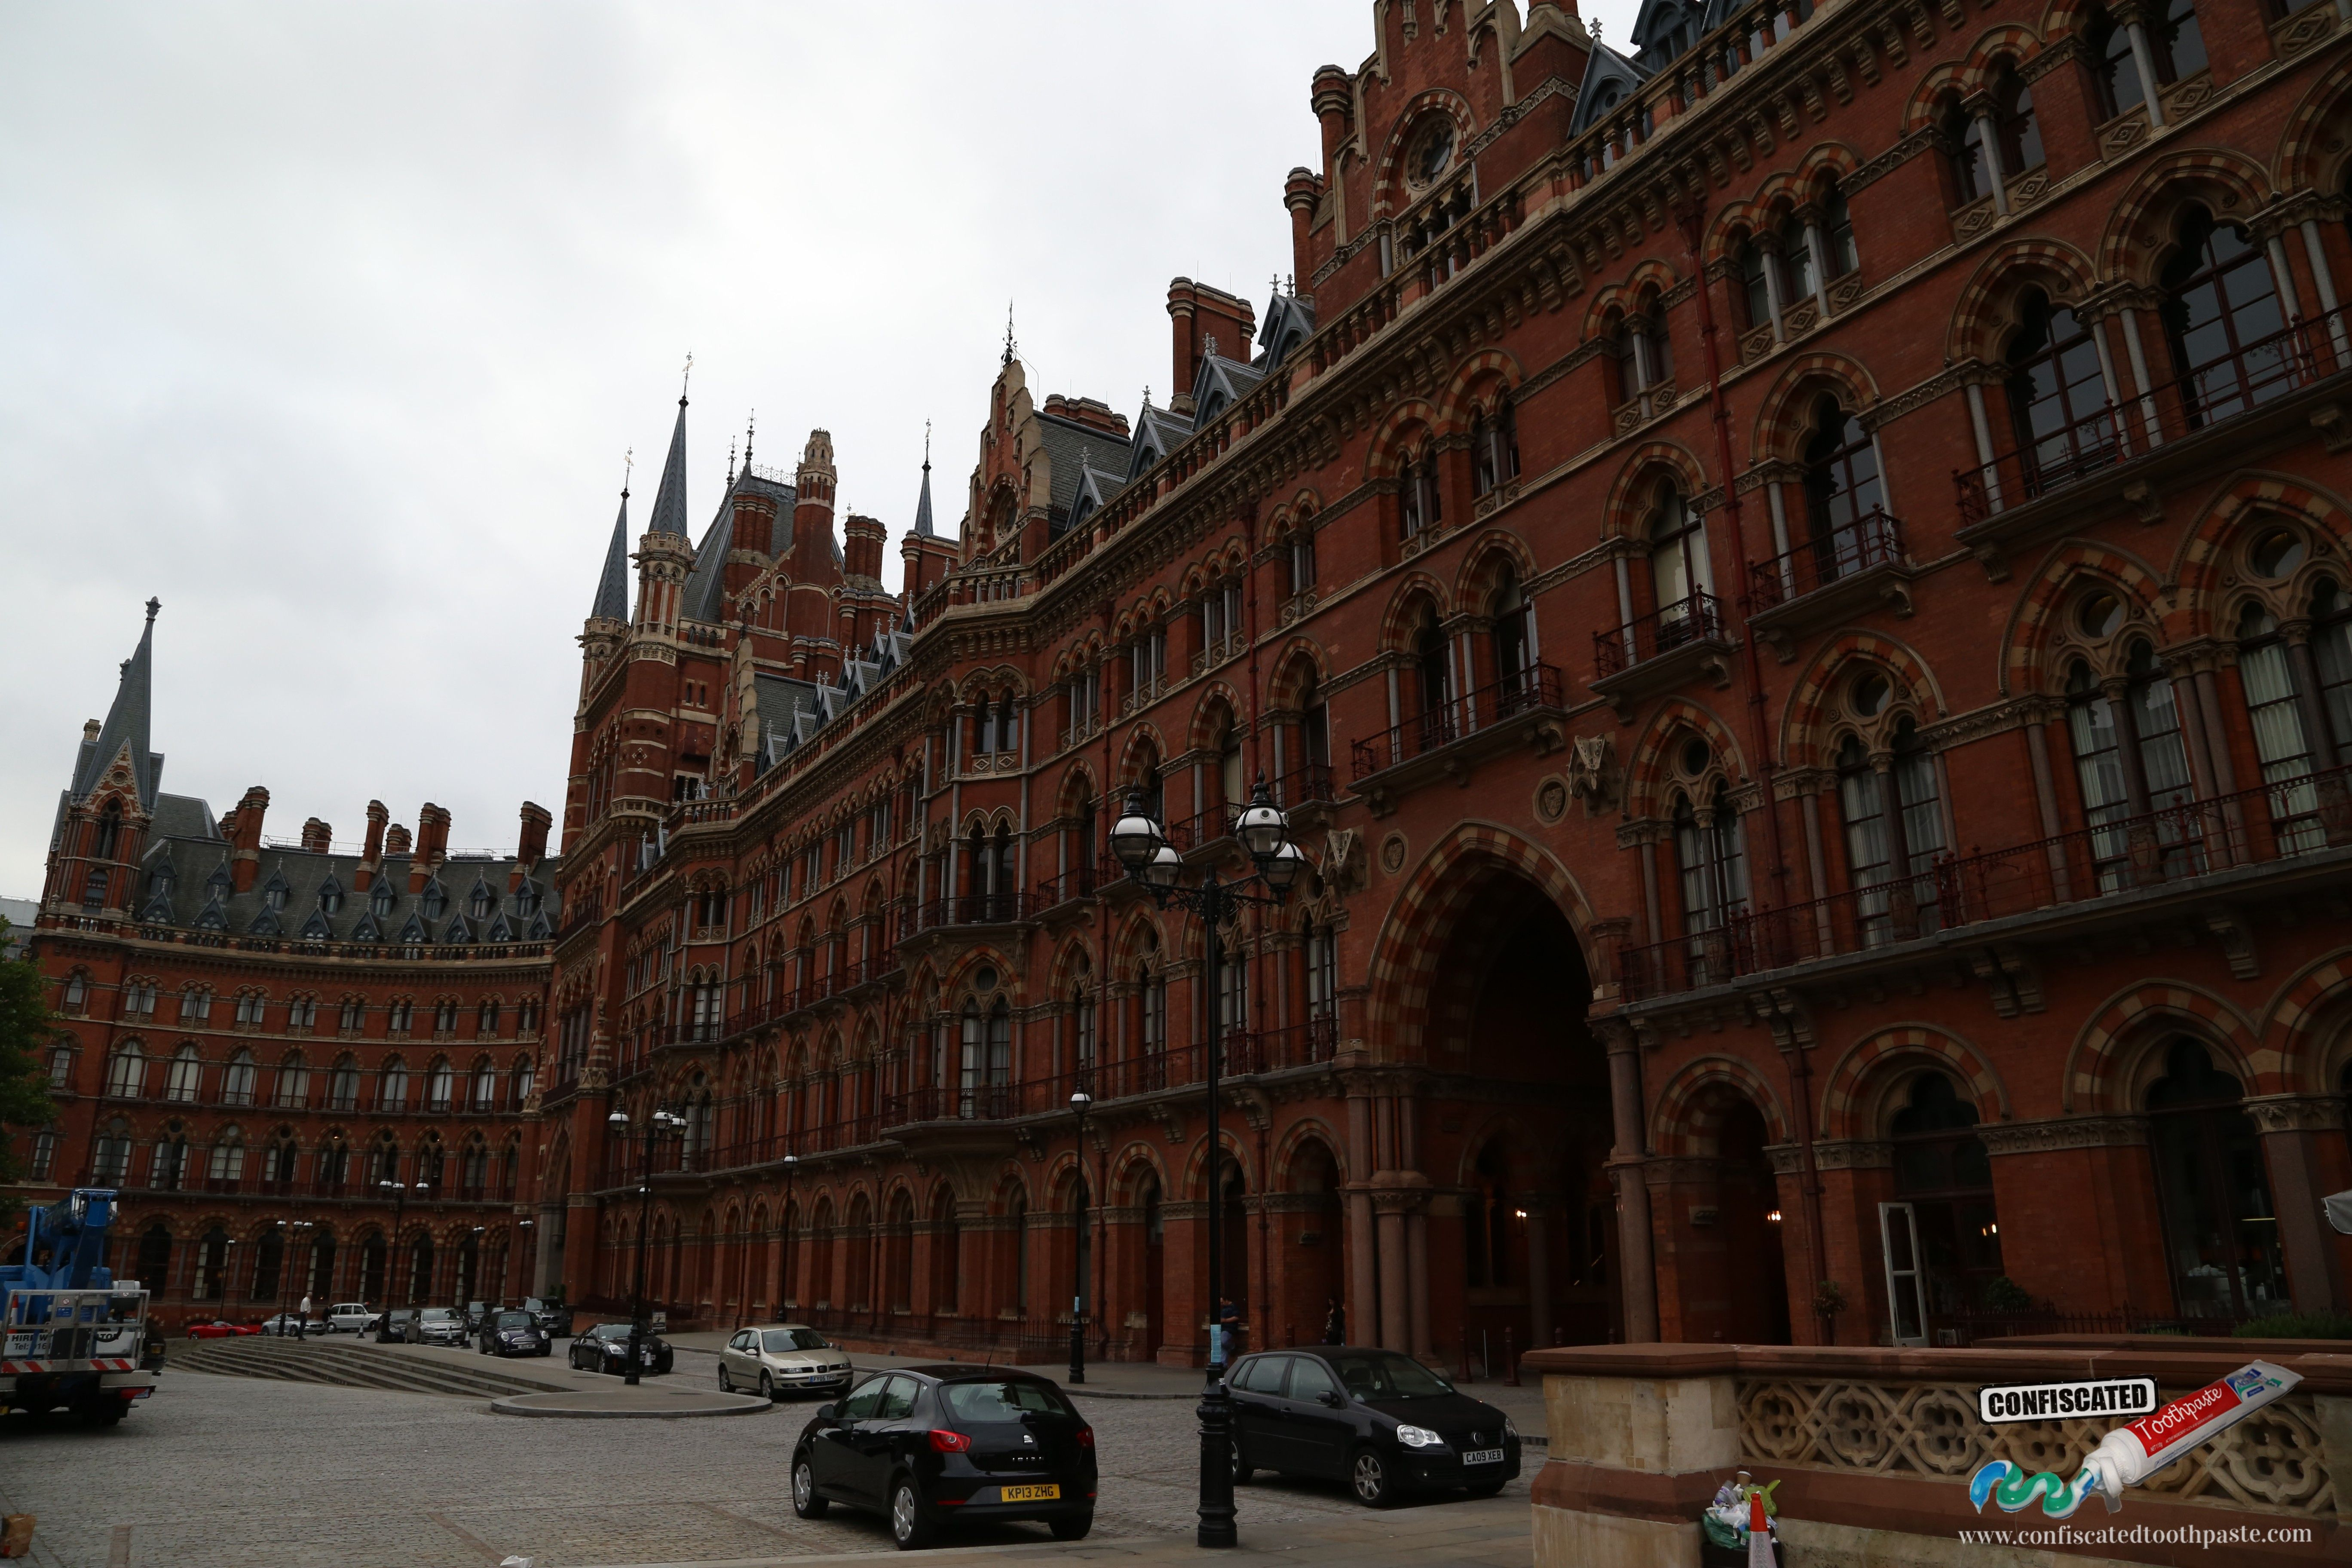 St Pancras Station in London!  Life is a Roadtrip through Southern England --> http://www.confiscatedtoothpaste.com/a-roadtrip-through-southern-england/